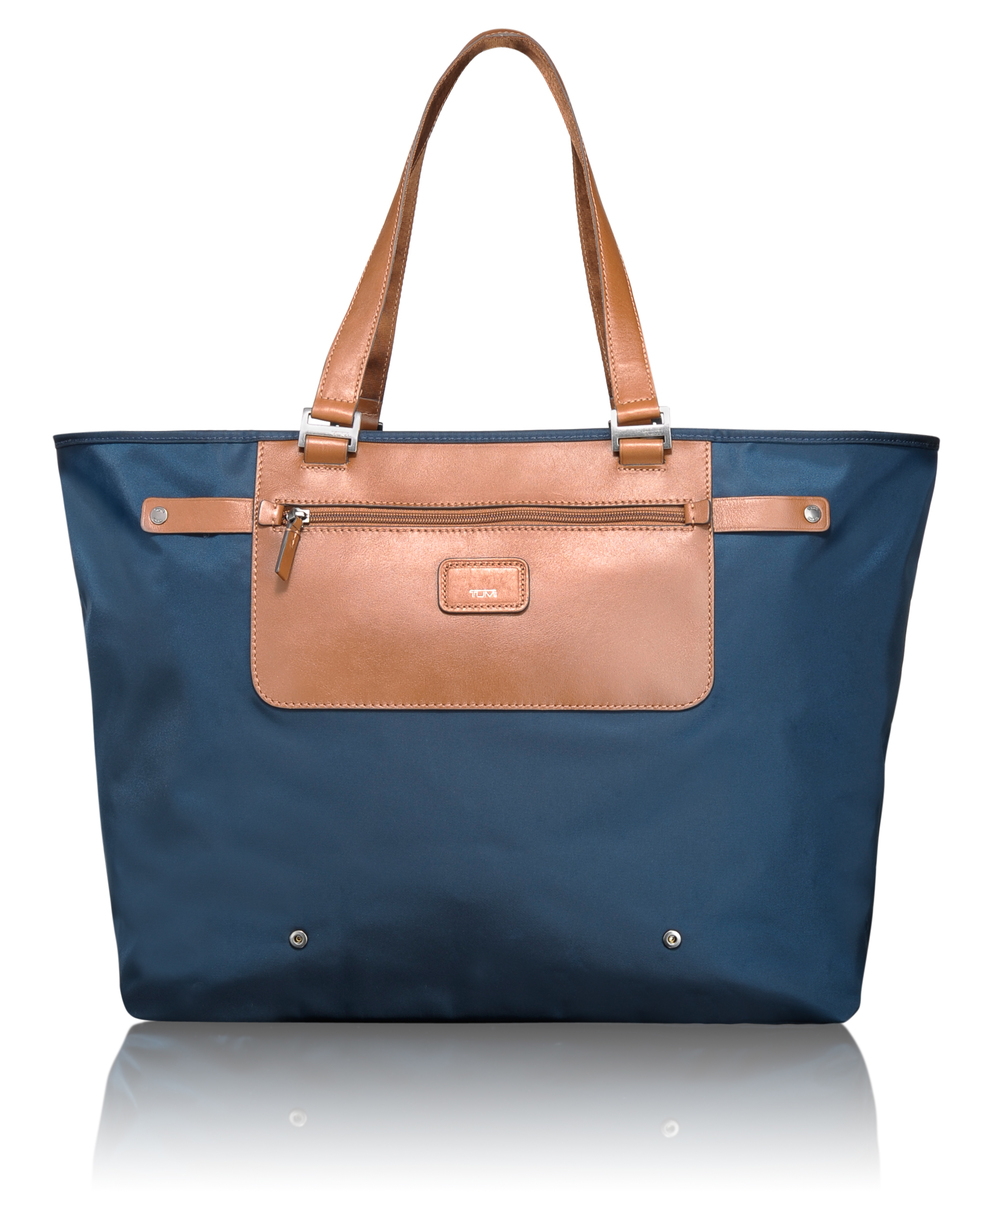 14844 Navy Pack A Way Large Tote.jpg